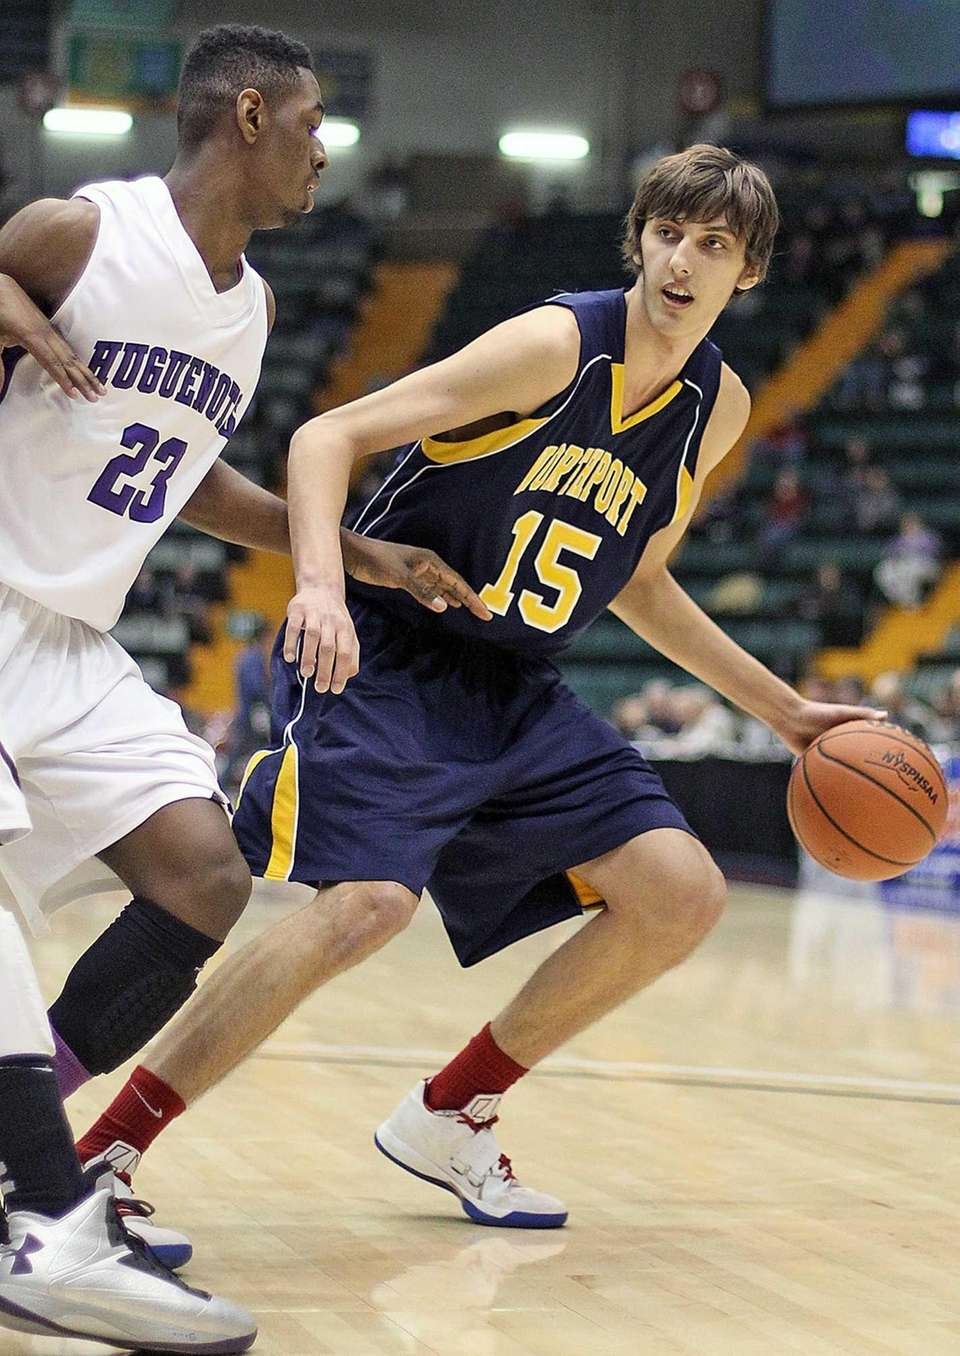 Northport's Luke Petrasek looks to make a move